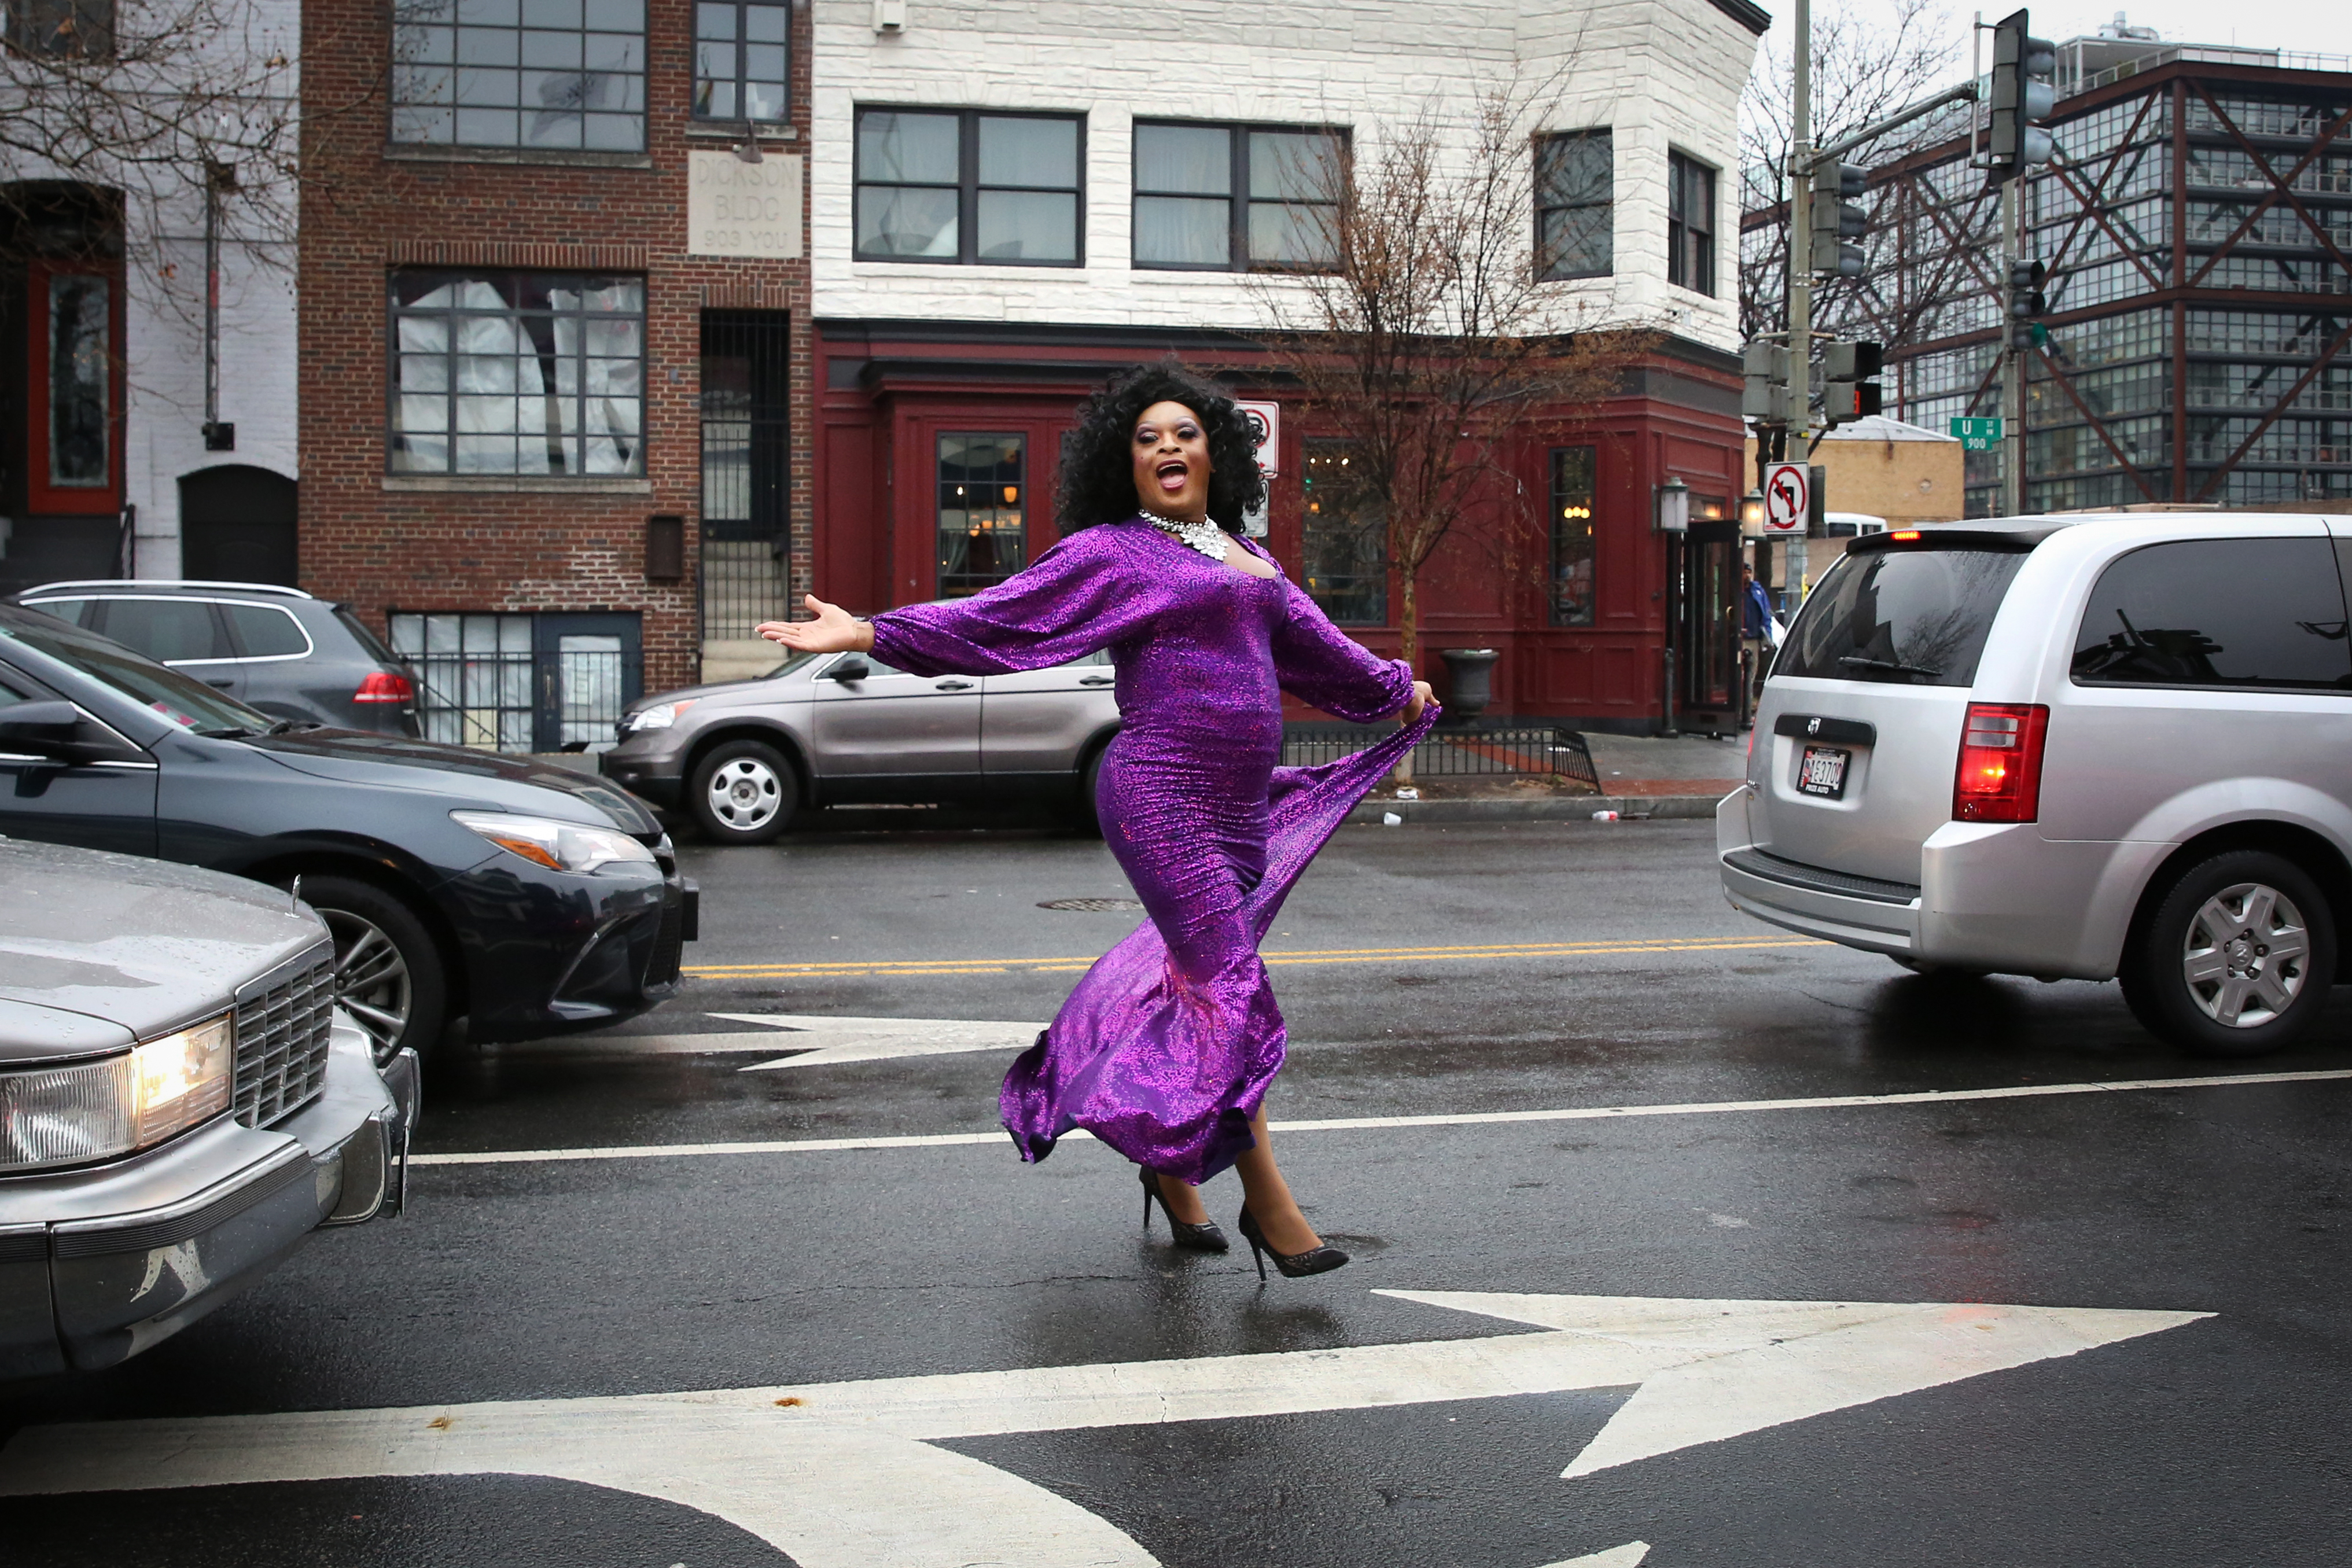 February, 2017. A drag queen dances in the streets during a performance at Nellie's in Shaw.{&amp;nbsp;} (Amanda Andrade-Rhoades/DC Refined)<p></p>